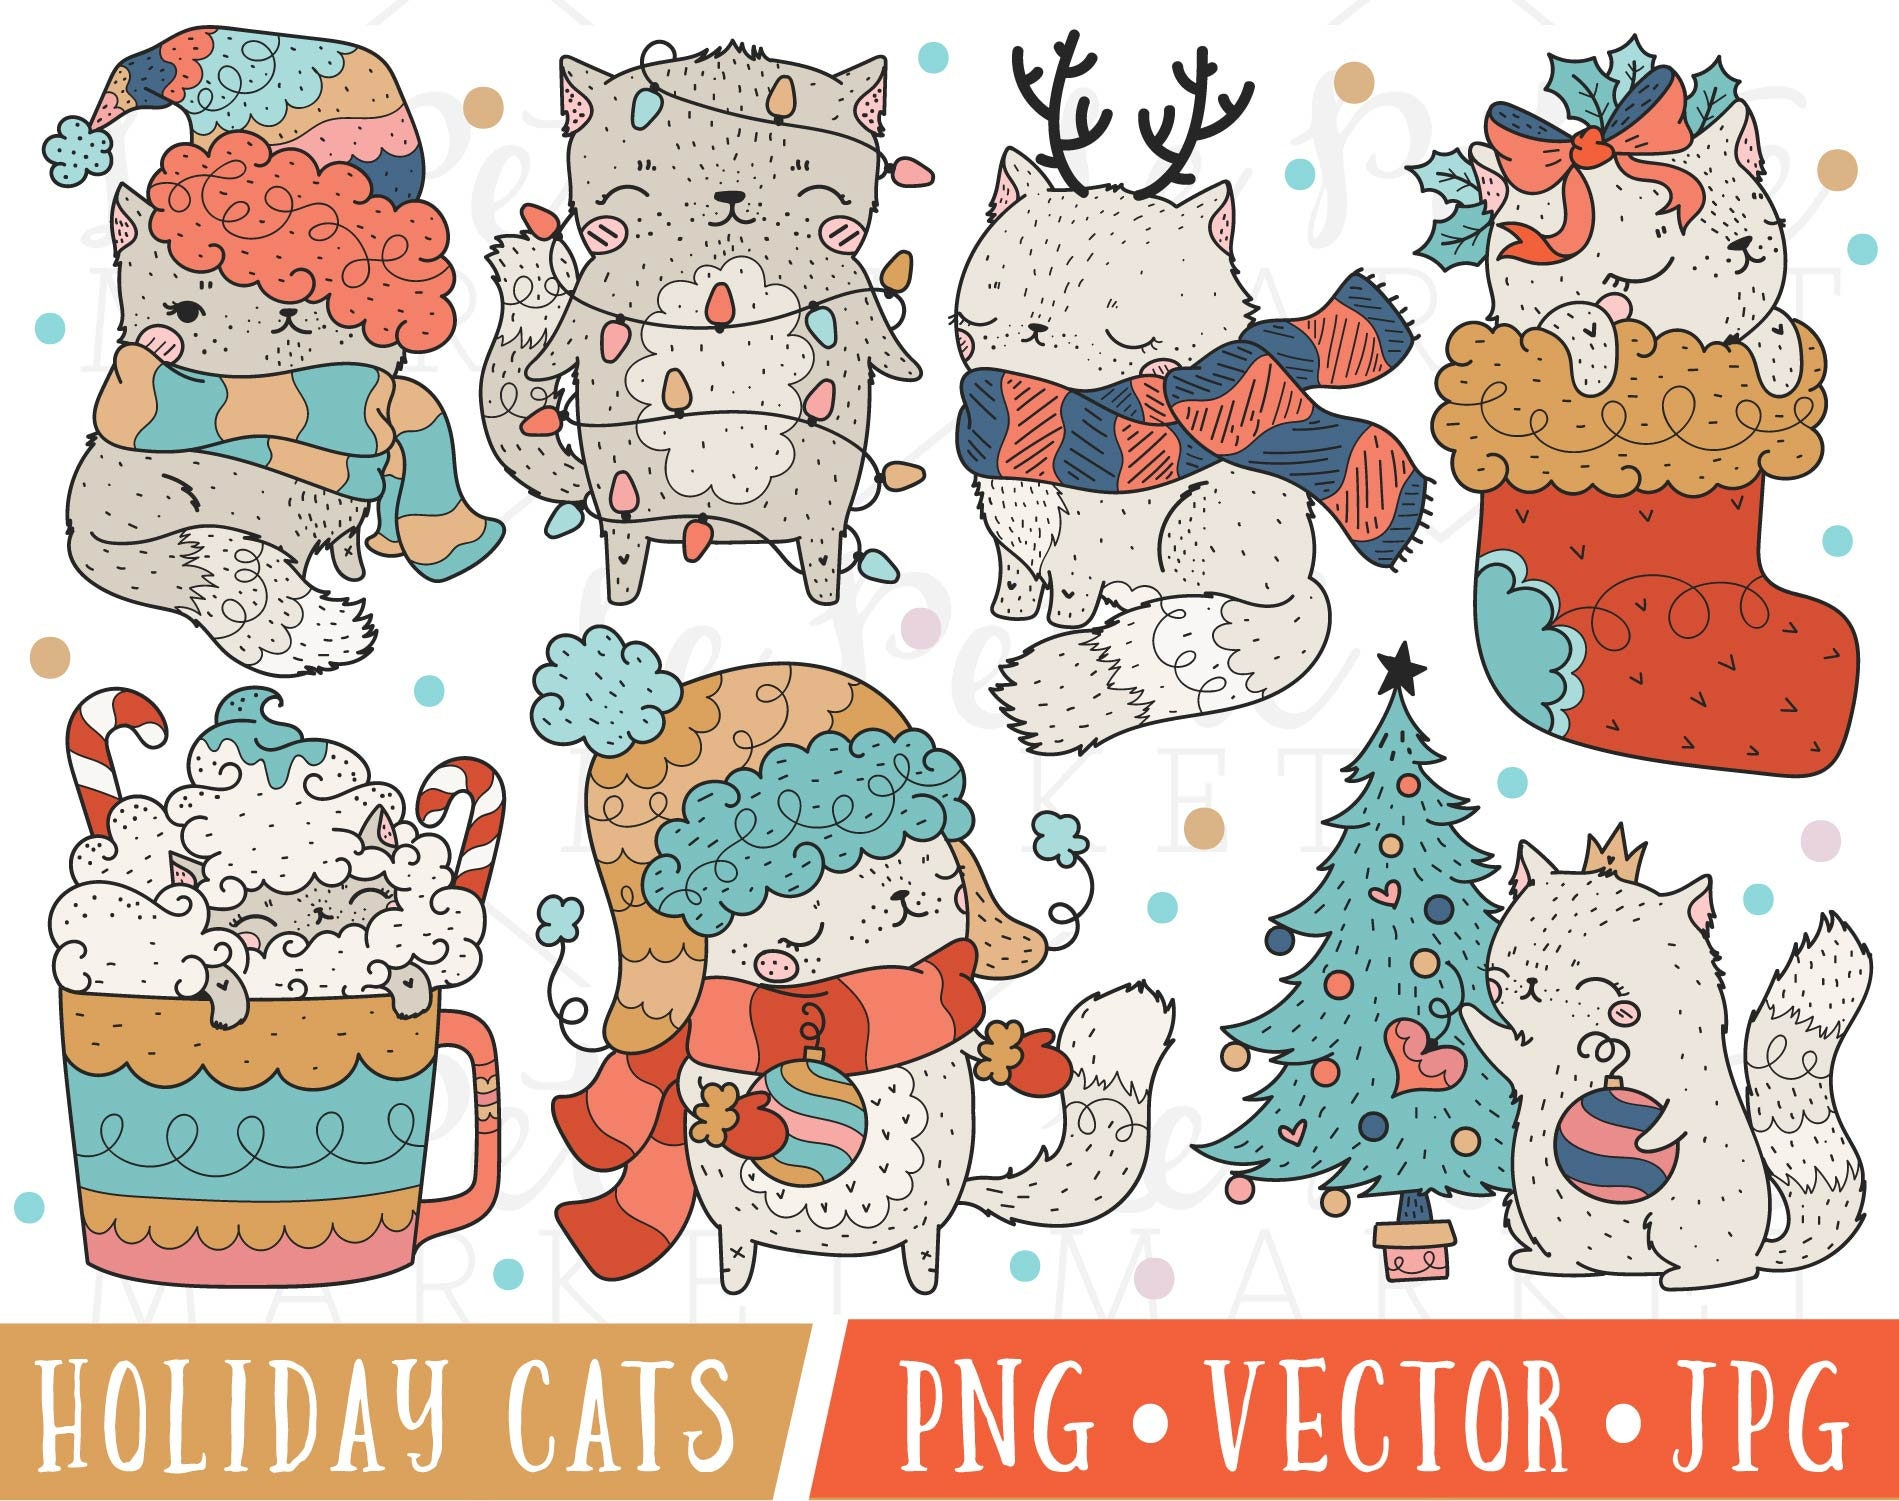 Christmas Cat Clipart Images Cute Holiday Cats Clipart Cute | Etsy